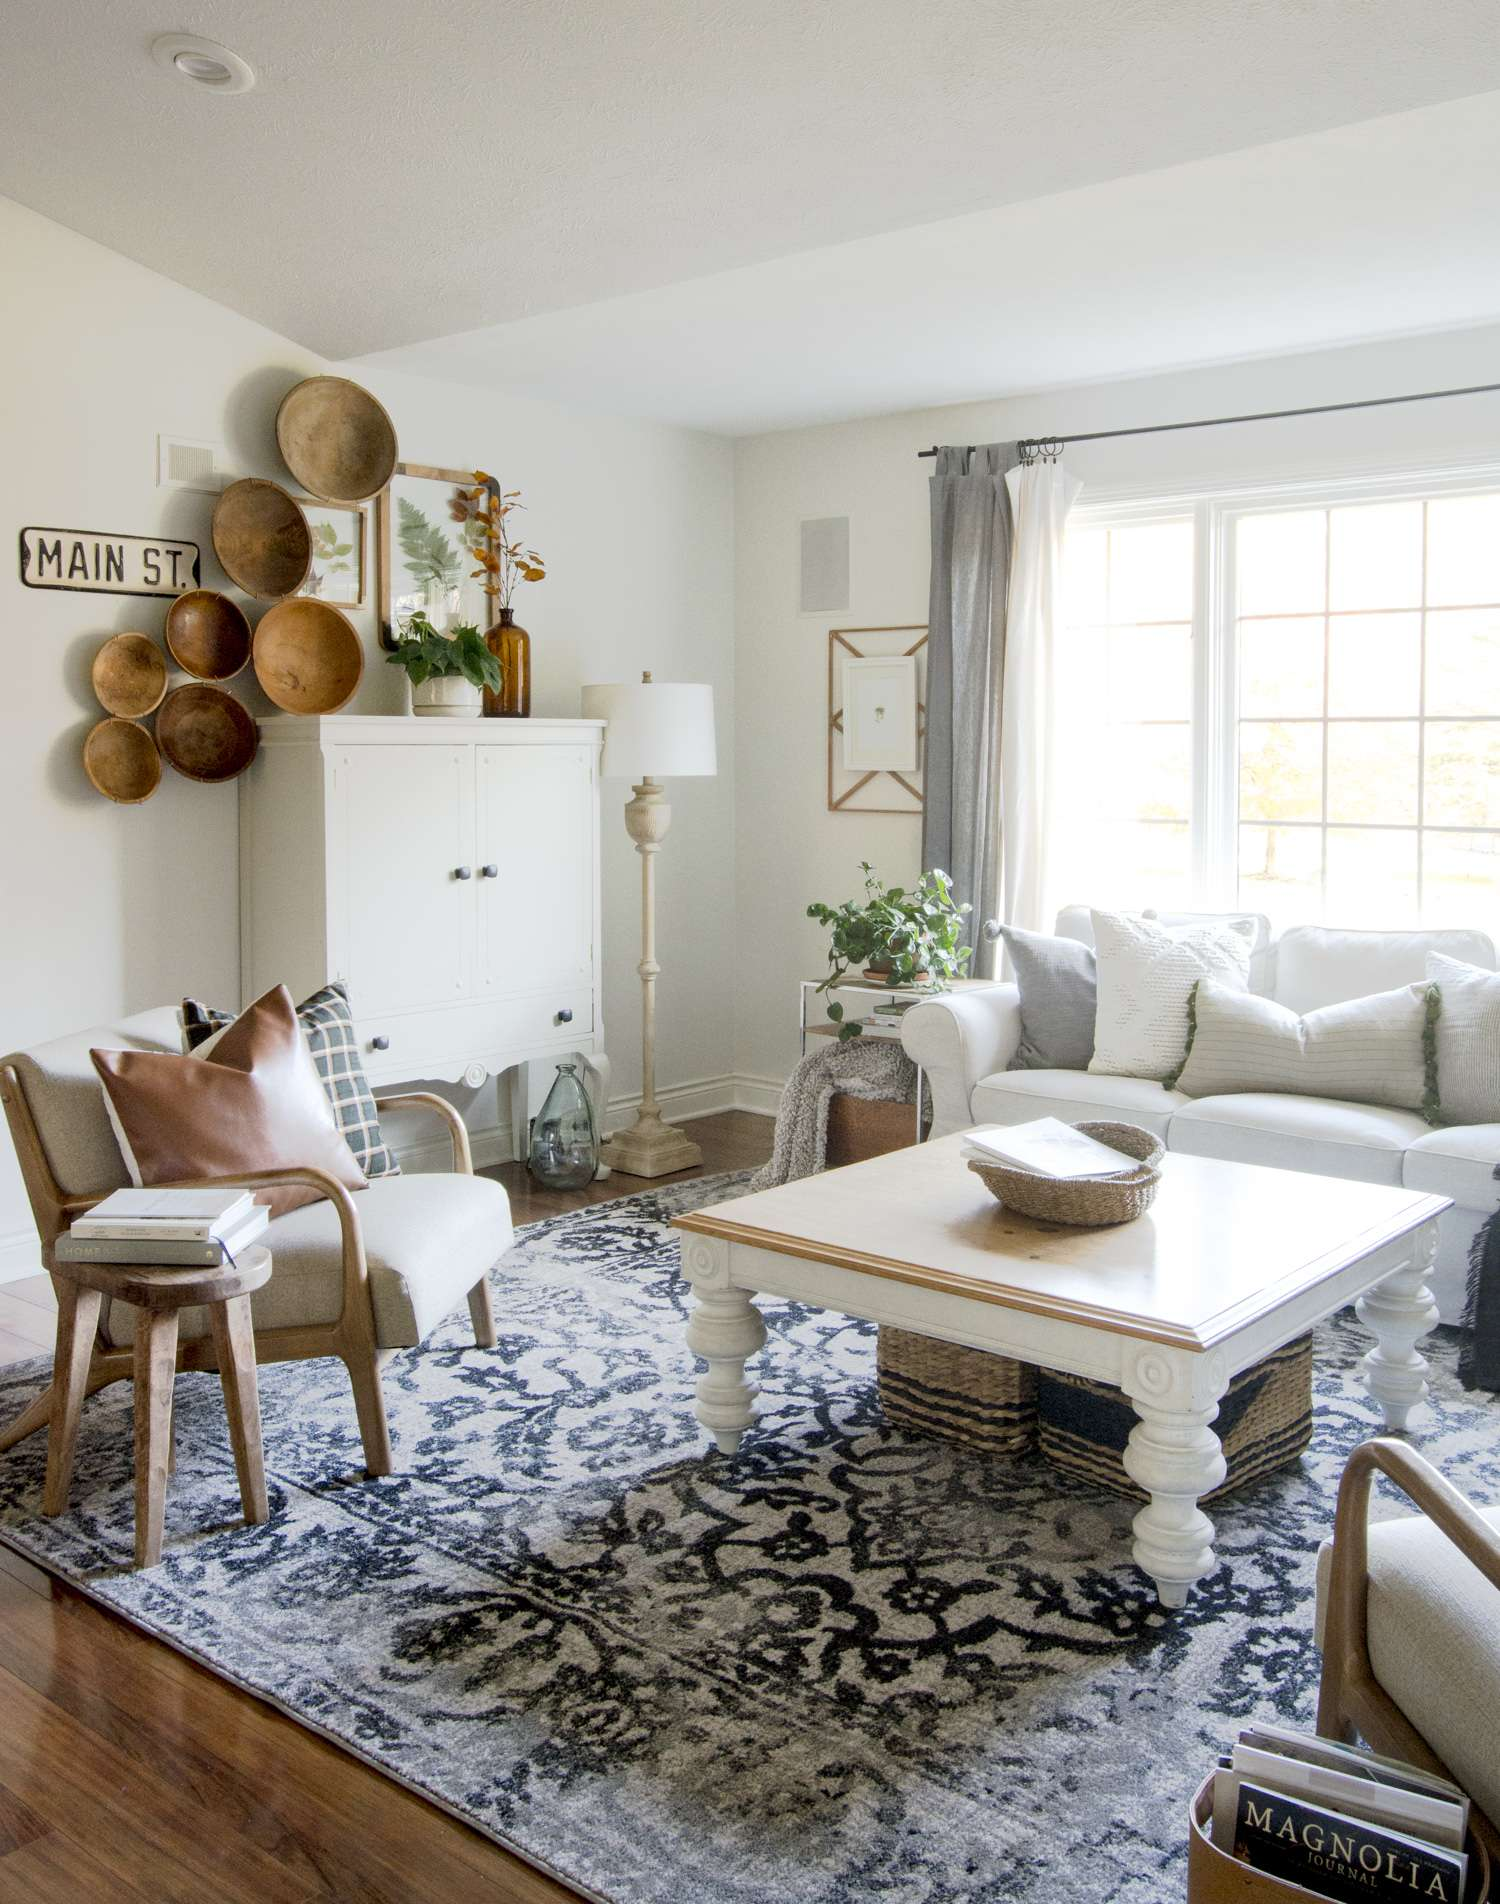 Discount designer rugs for a modern farmhouse living room.